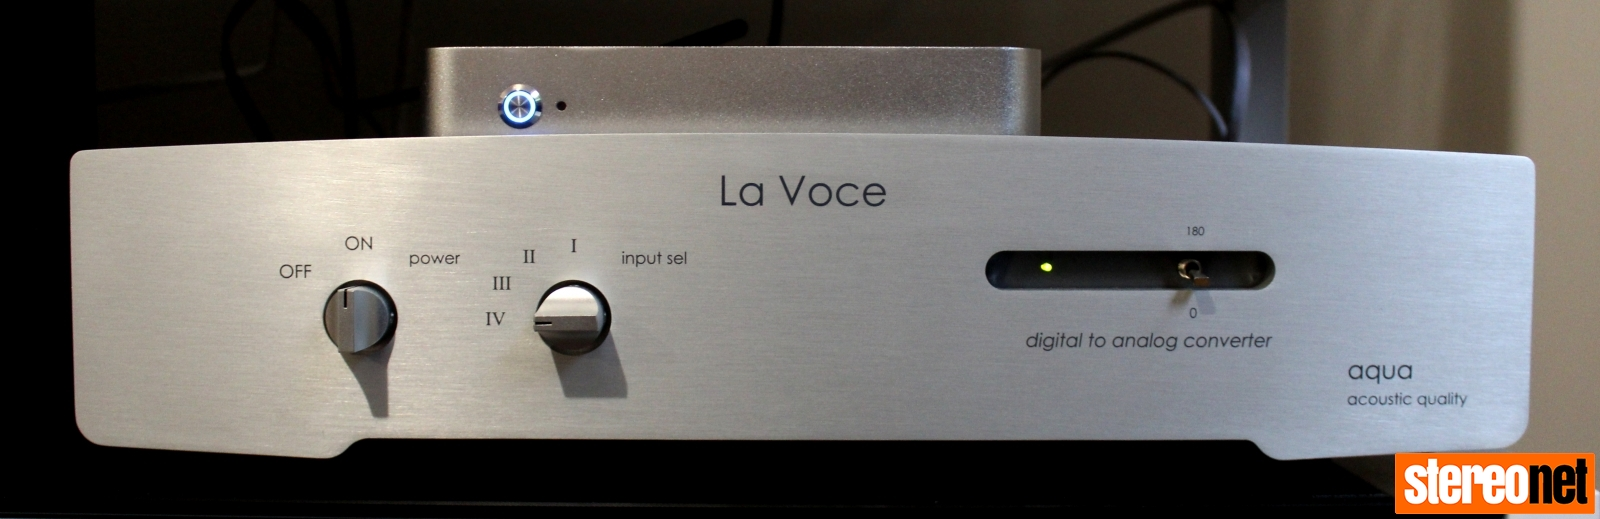 Aqua La Voce S3 DAC with Fidelizer Nimitra S streamer